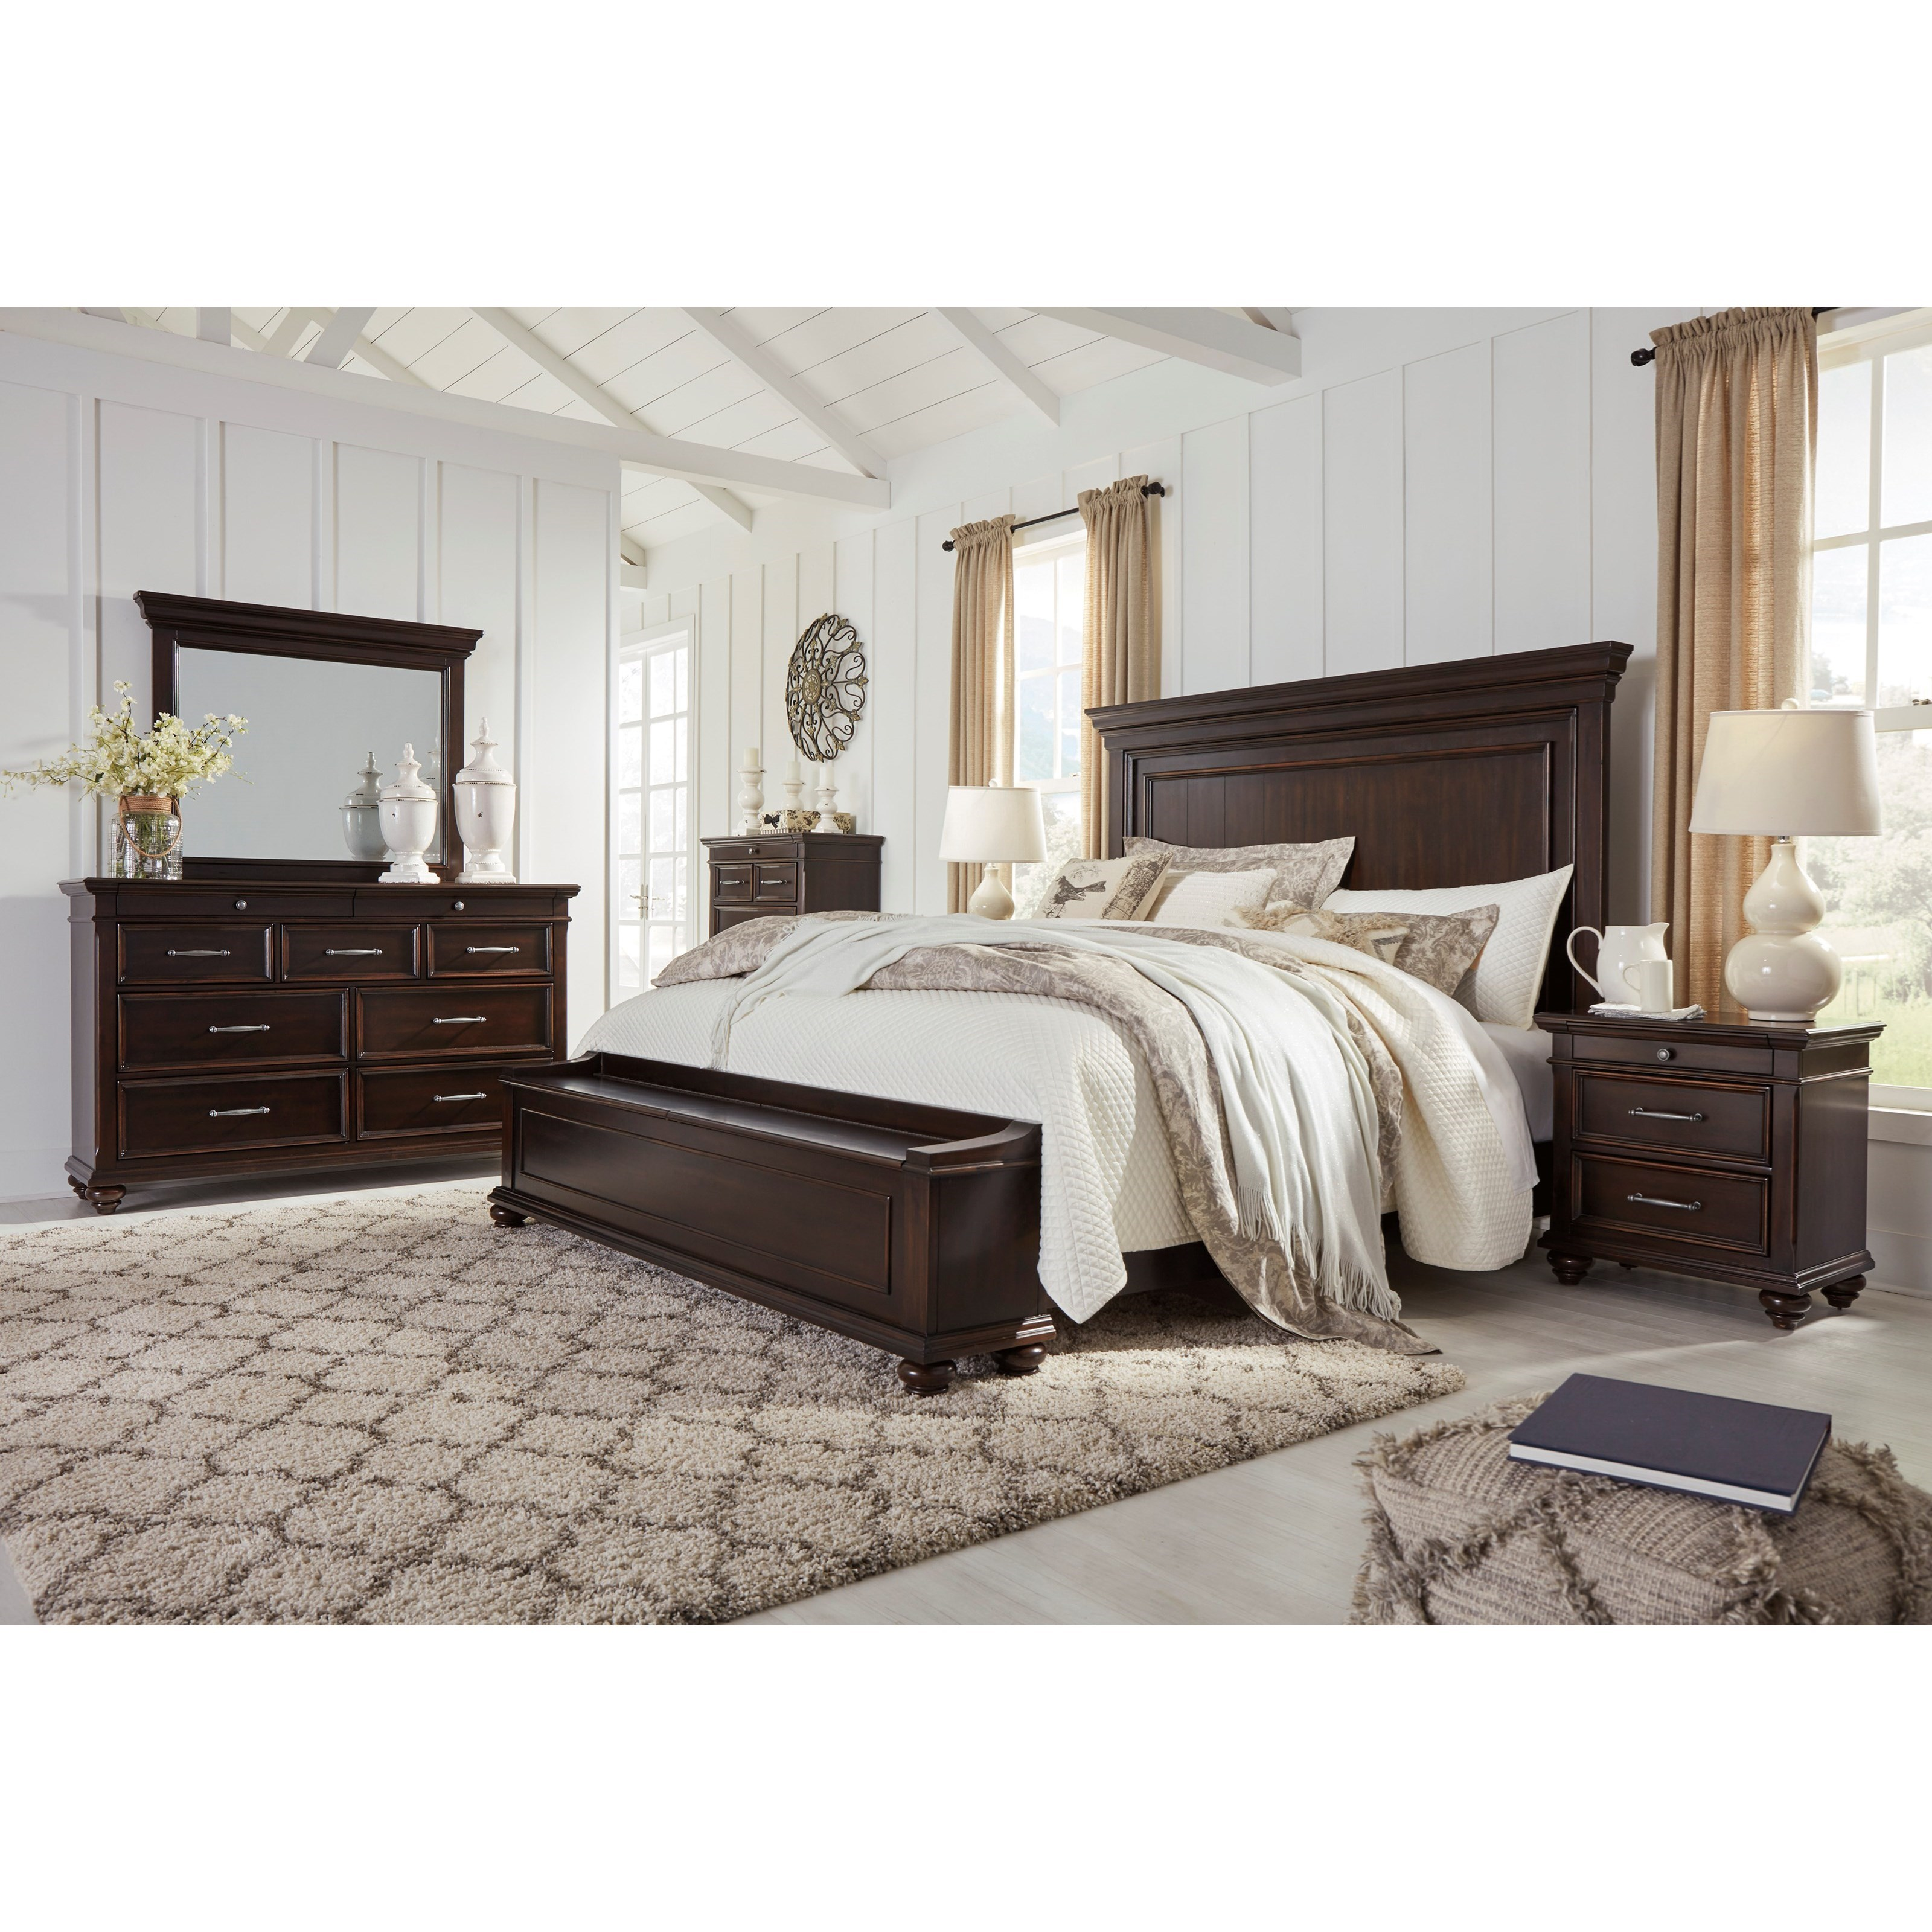 Brynhurst California King Bedroom Group by Ashley (Signature Design) at Johnny Janosik